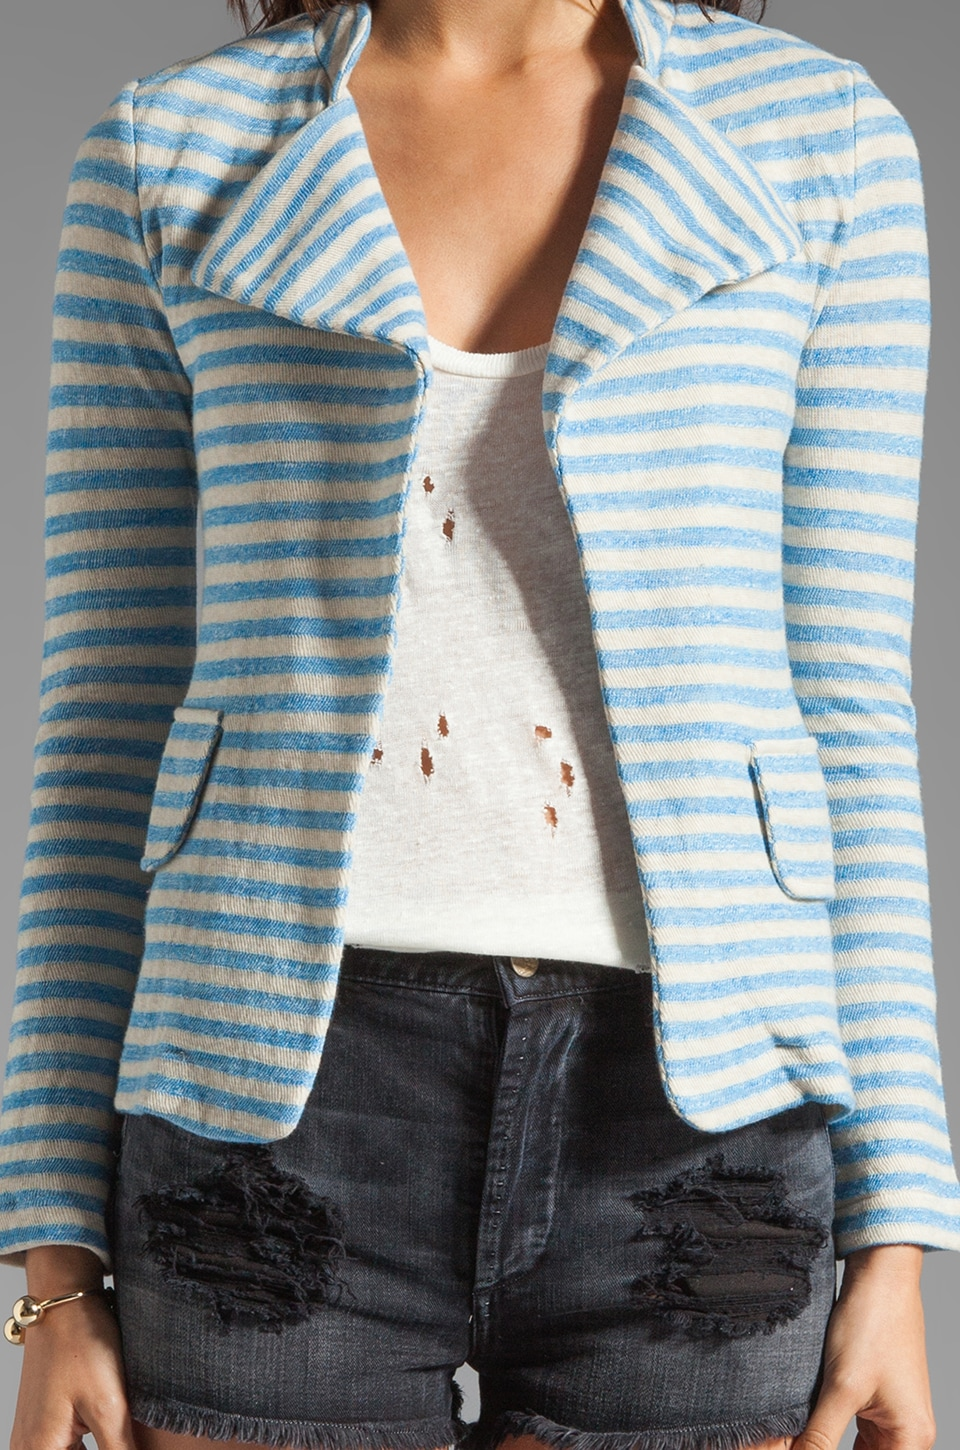 19 4t Blazer in Blue Stripe